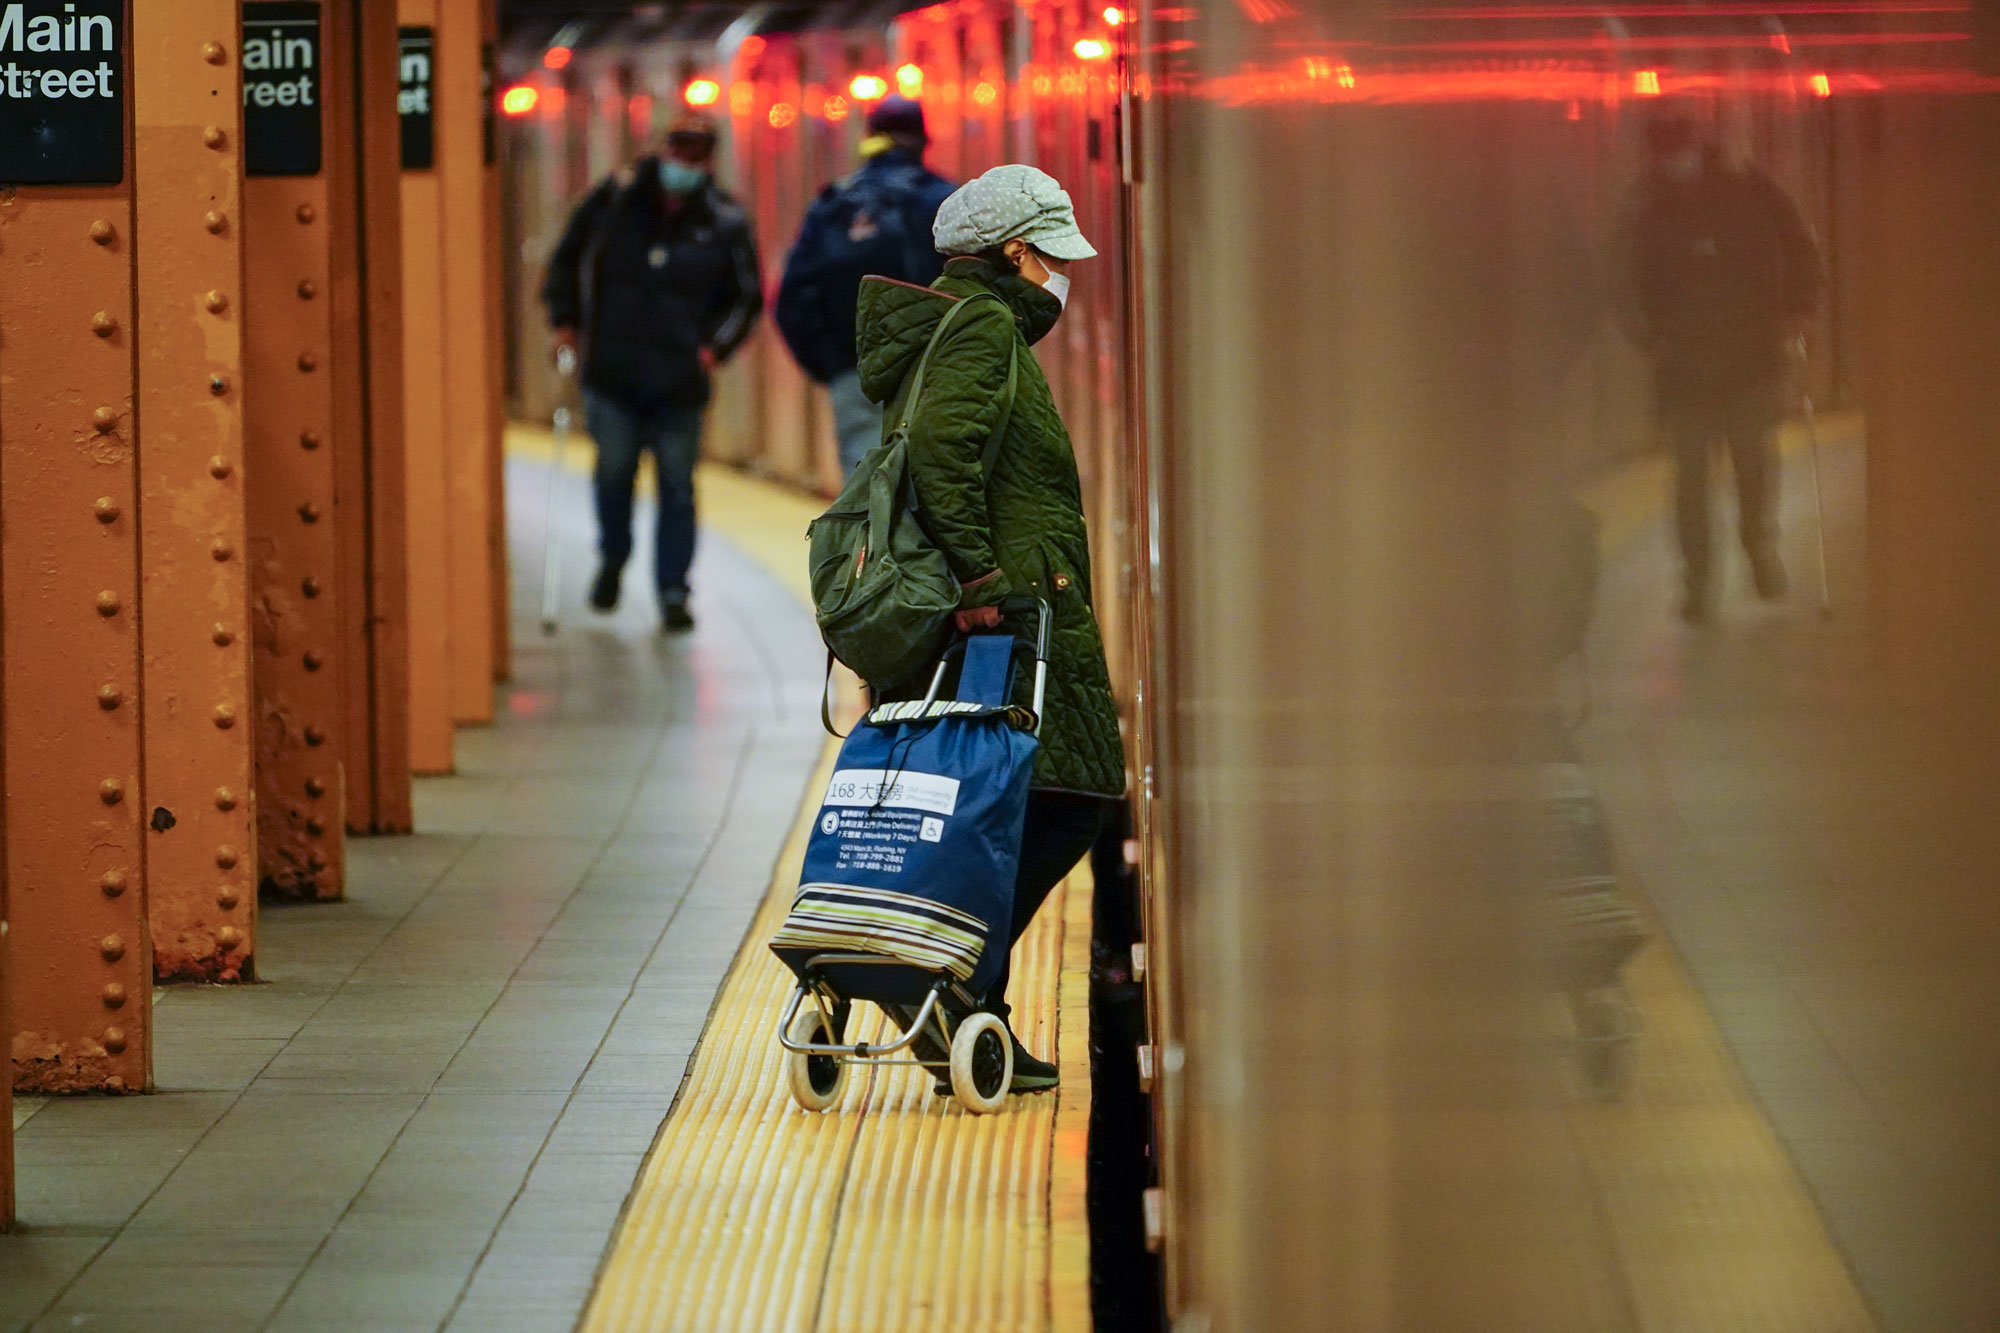 A person enters a train in Main St., Flushing, New York, on May 4.